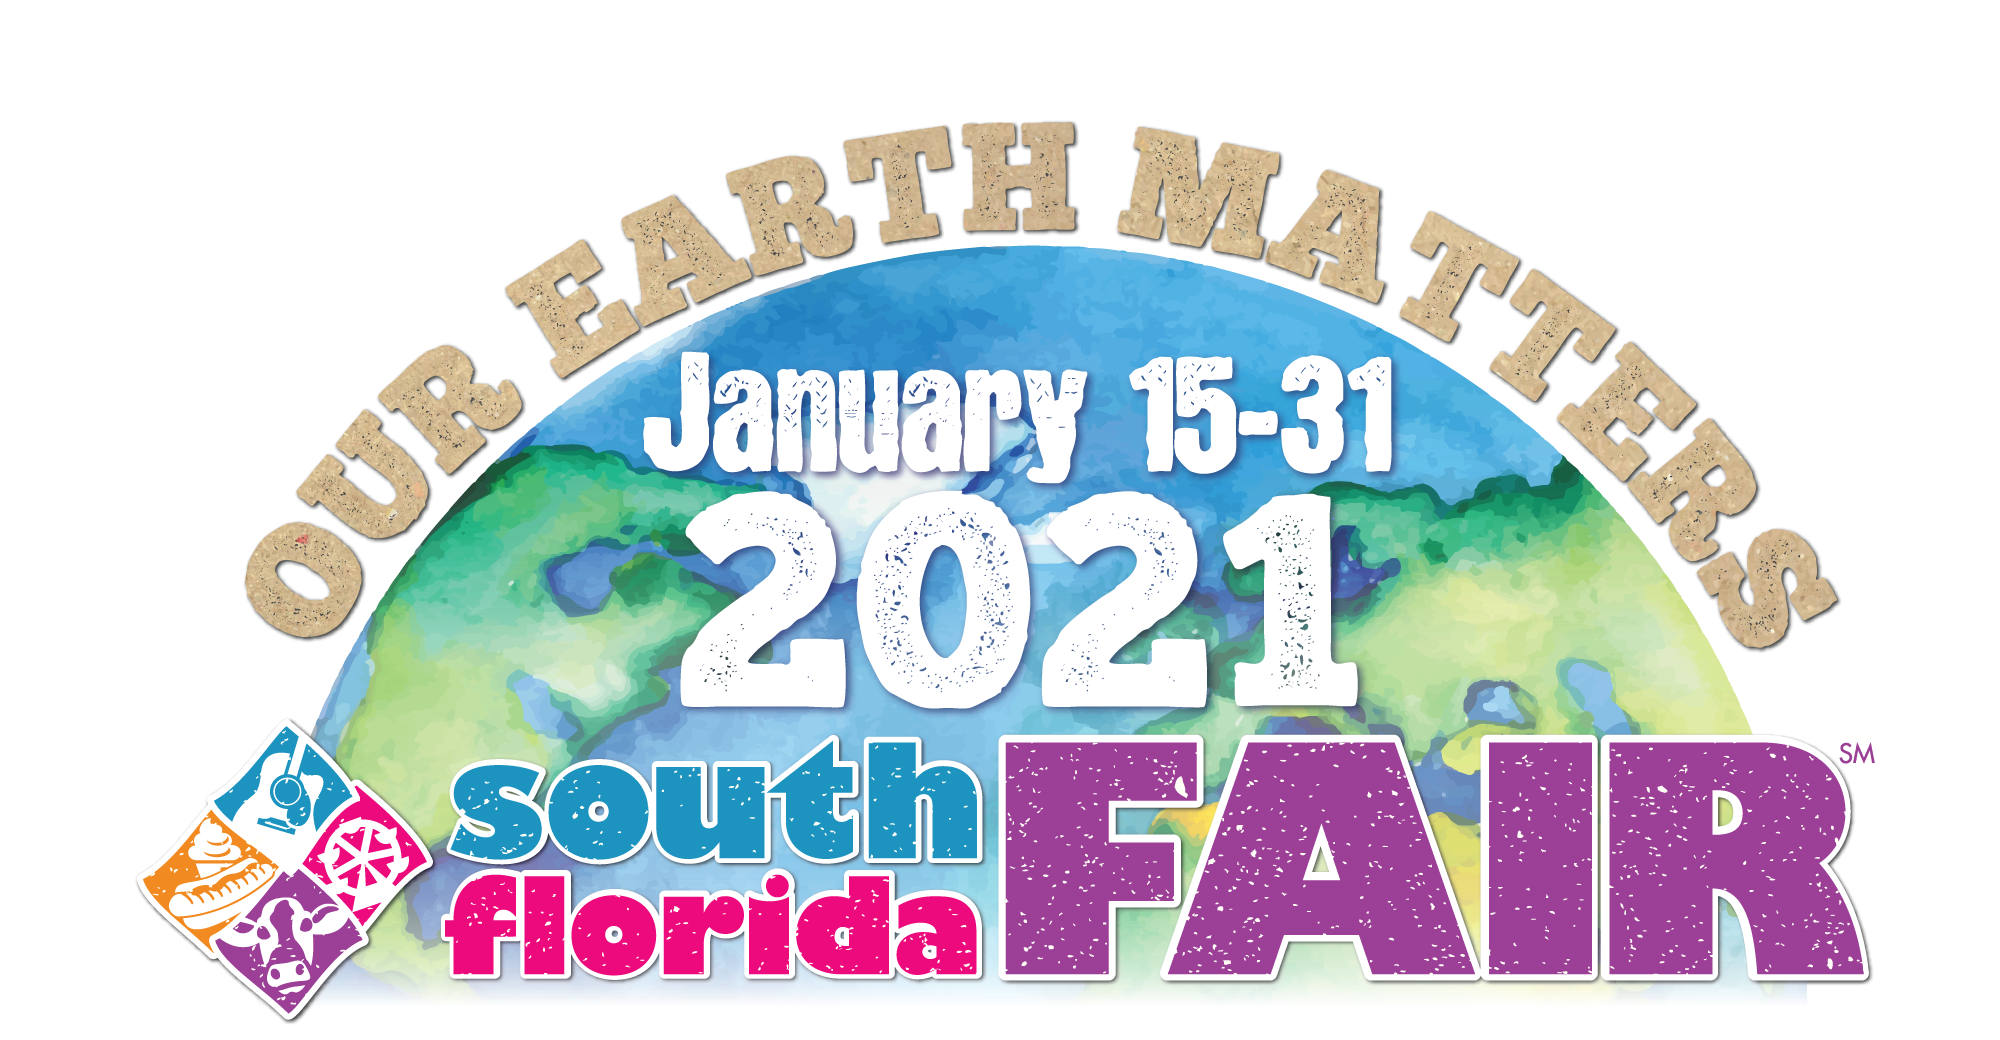 Our Earth Matters At The 2021 South Florida Fair, Jan. 15-31 intended for South Florida Fair 2021